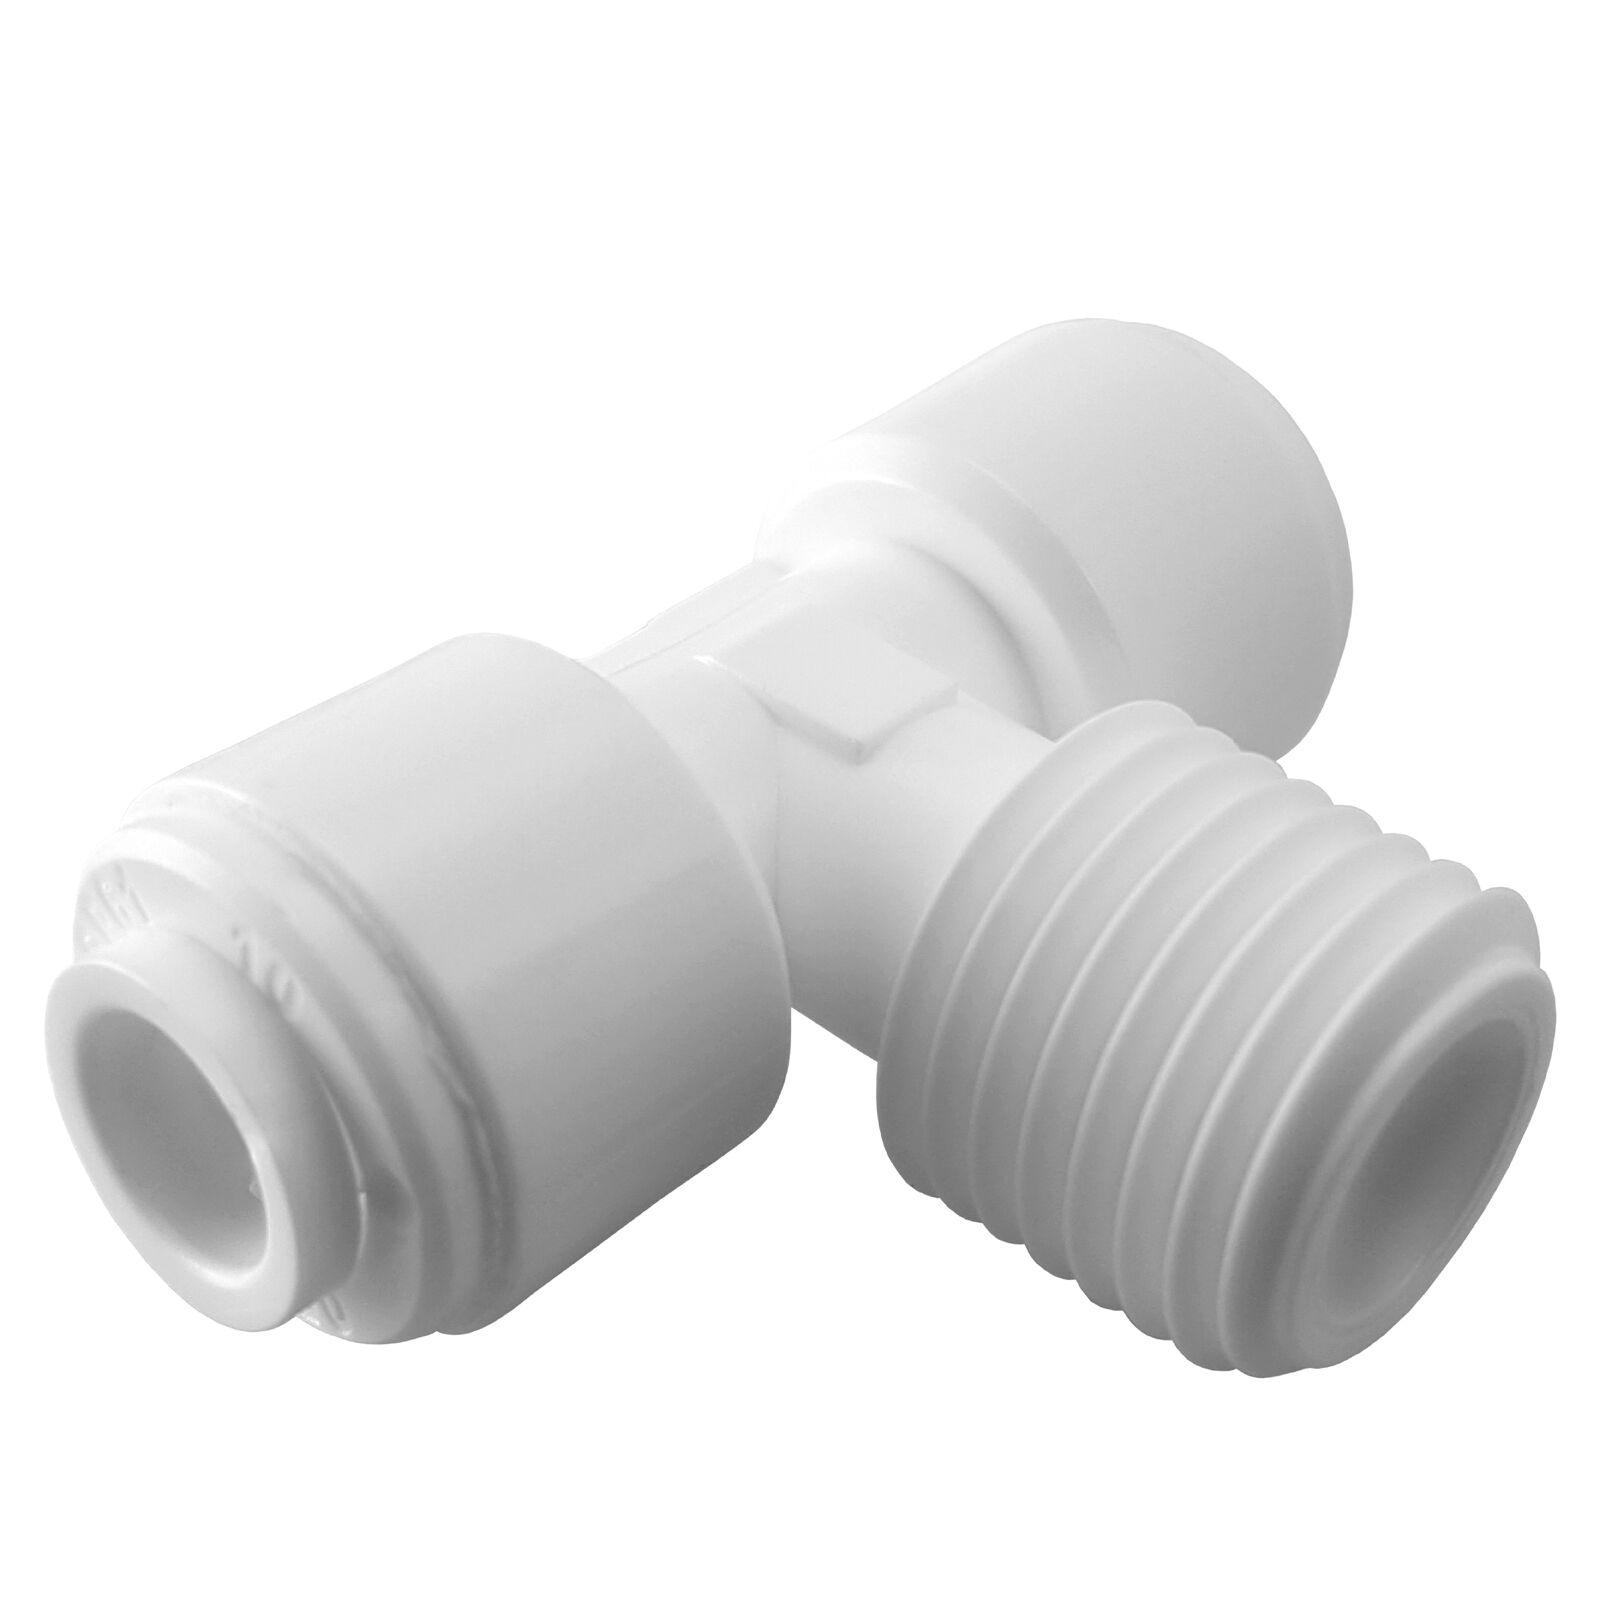 Express Water Male Branch Tee 1 4  Fitting Connection Water Filters   RO System